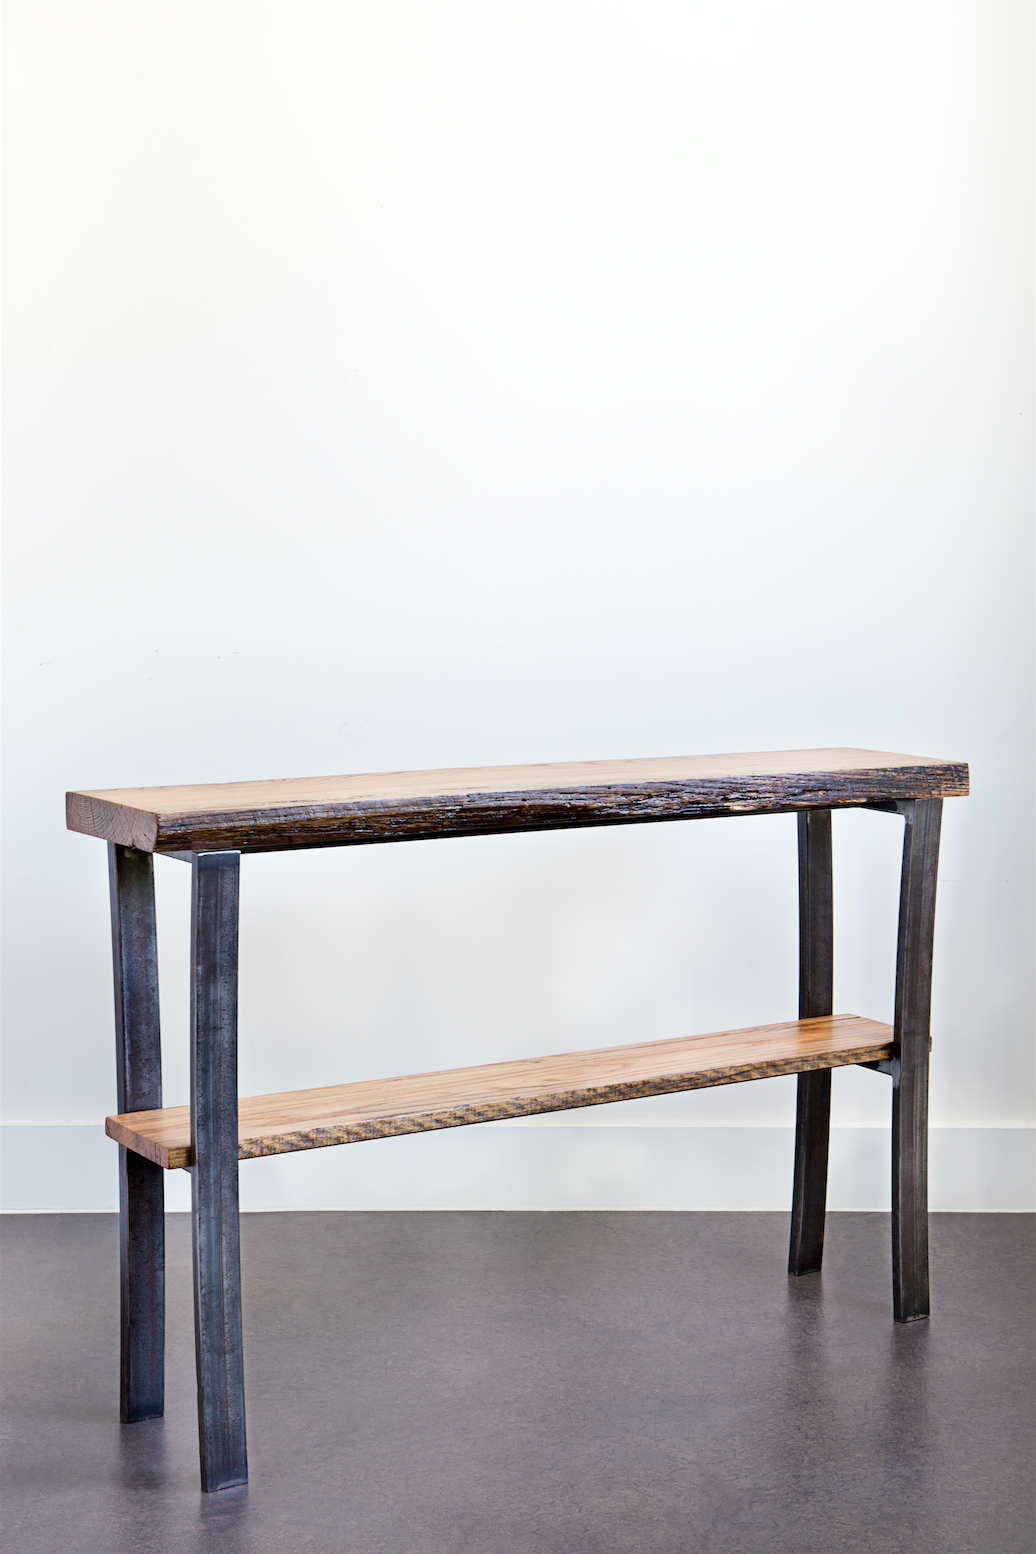 OAK + STEEL CONSOLE TABLE